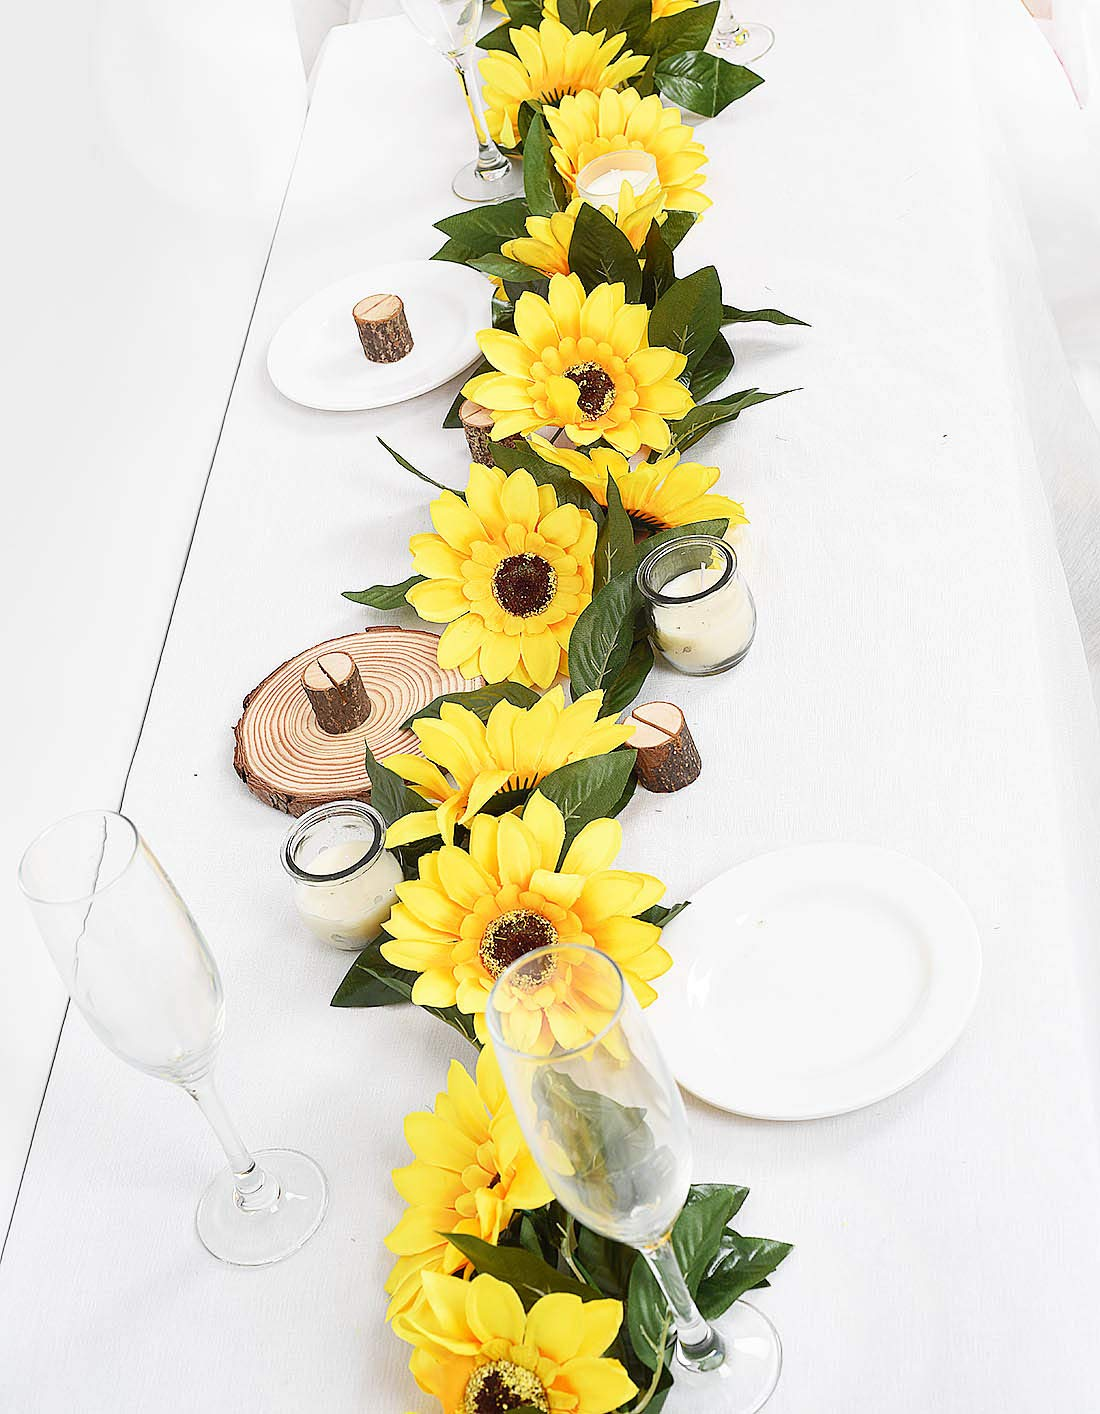 Artificial Sunflower Garland Silk Sunflower Chain Vine For Wedding Table Decor